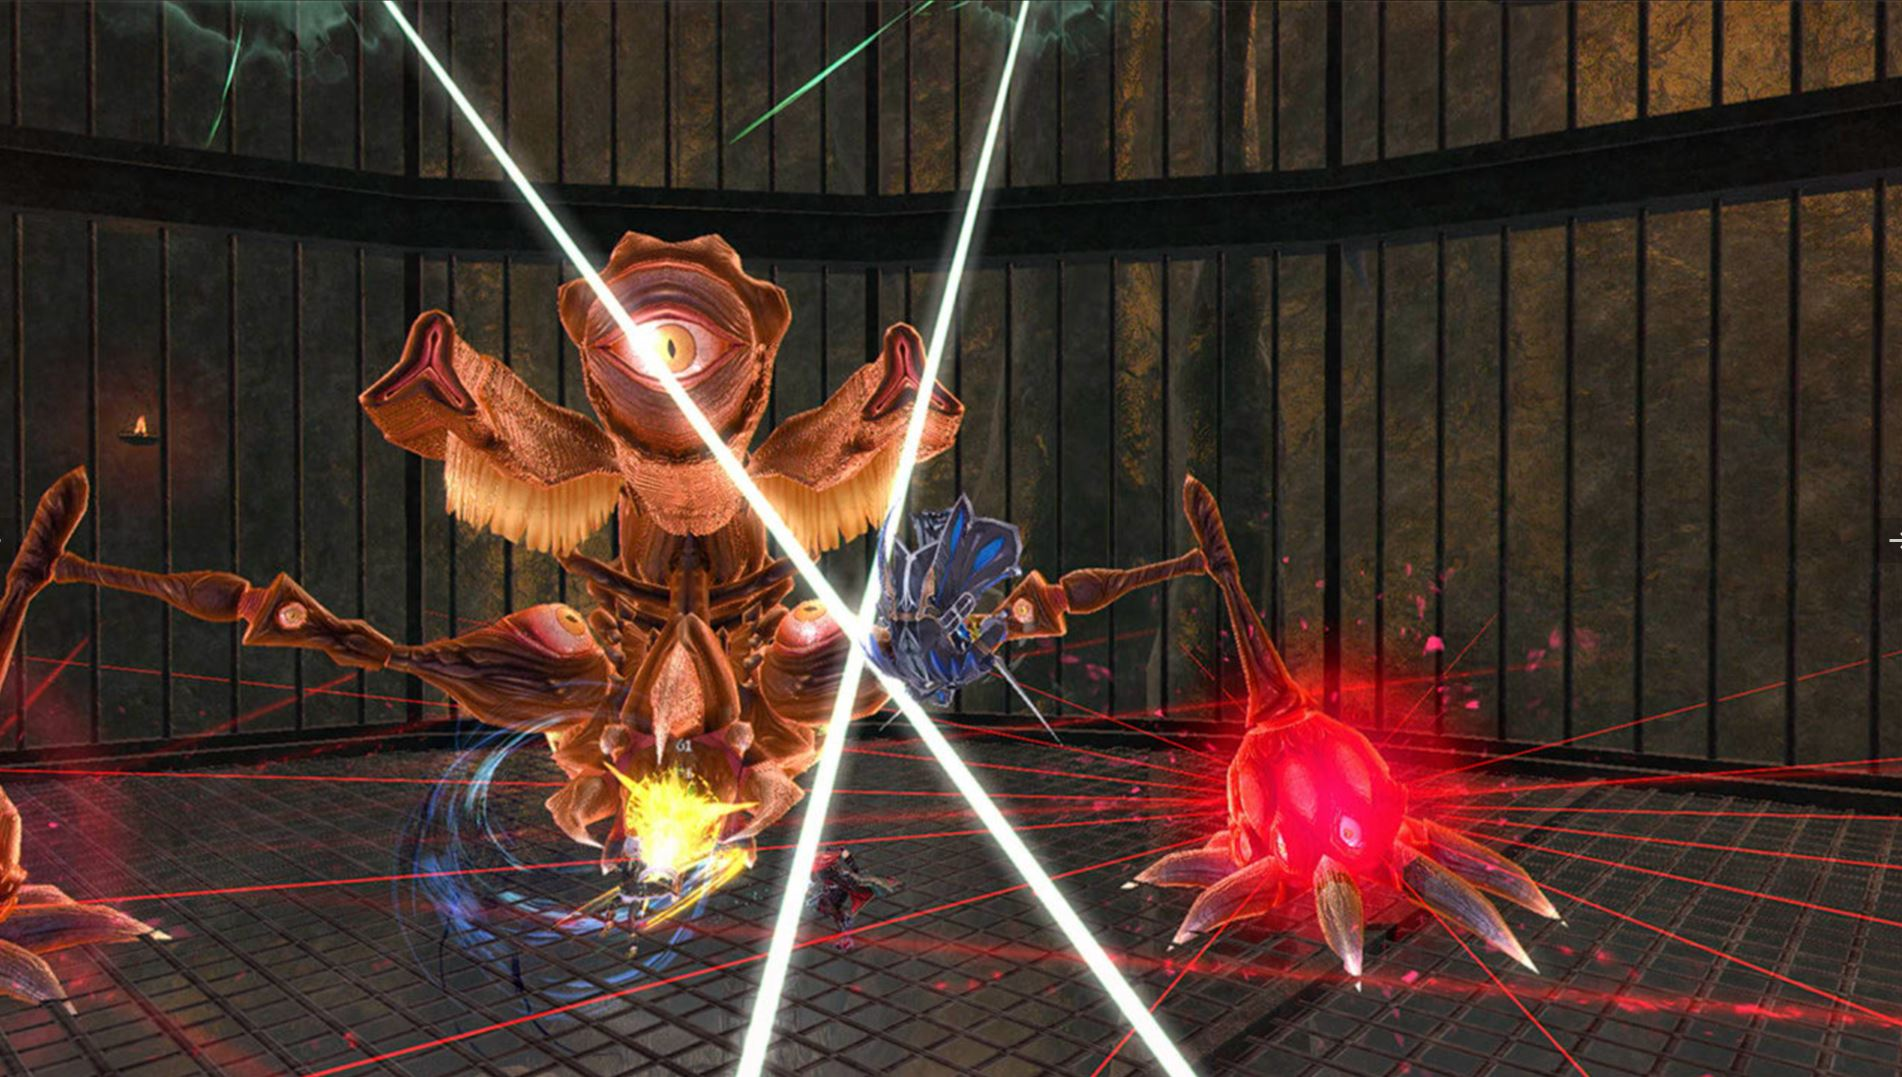 Ys IX Monstrum Nox demo for Switch now available on eShop